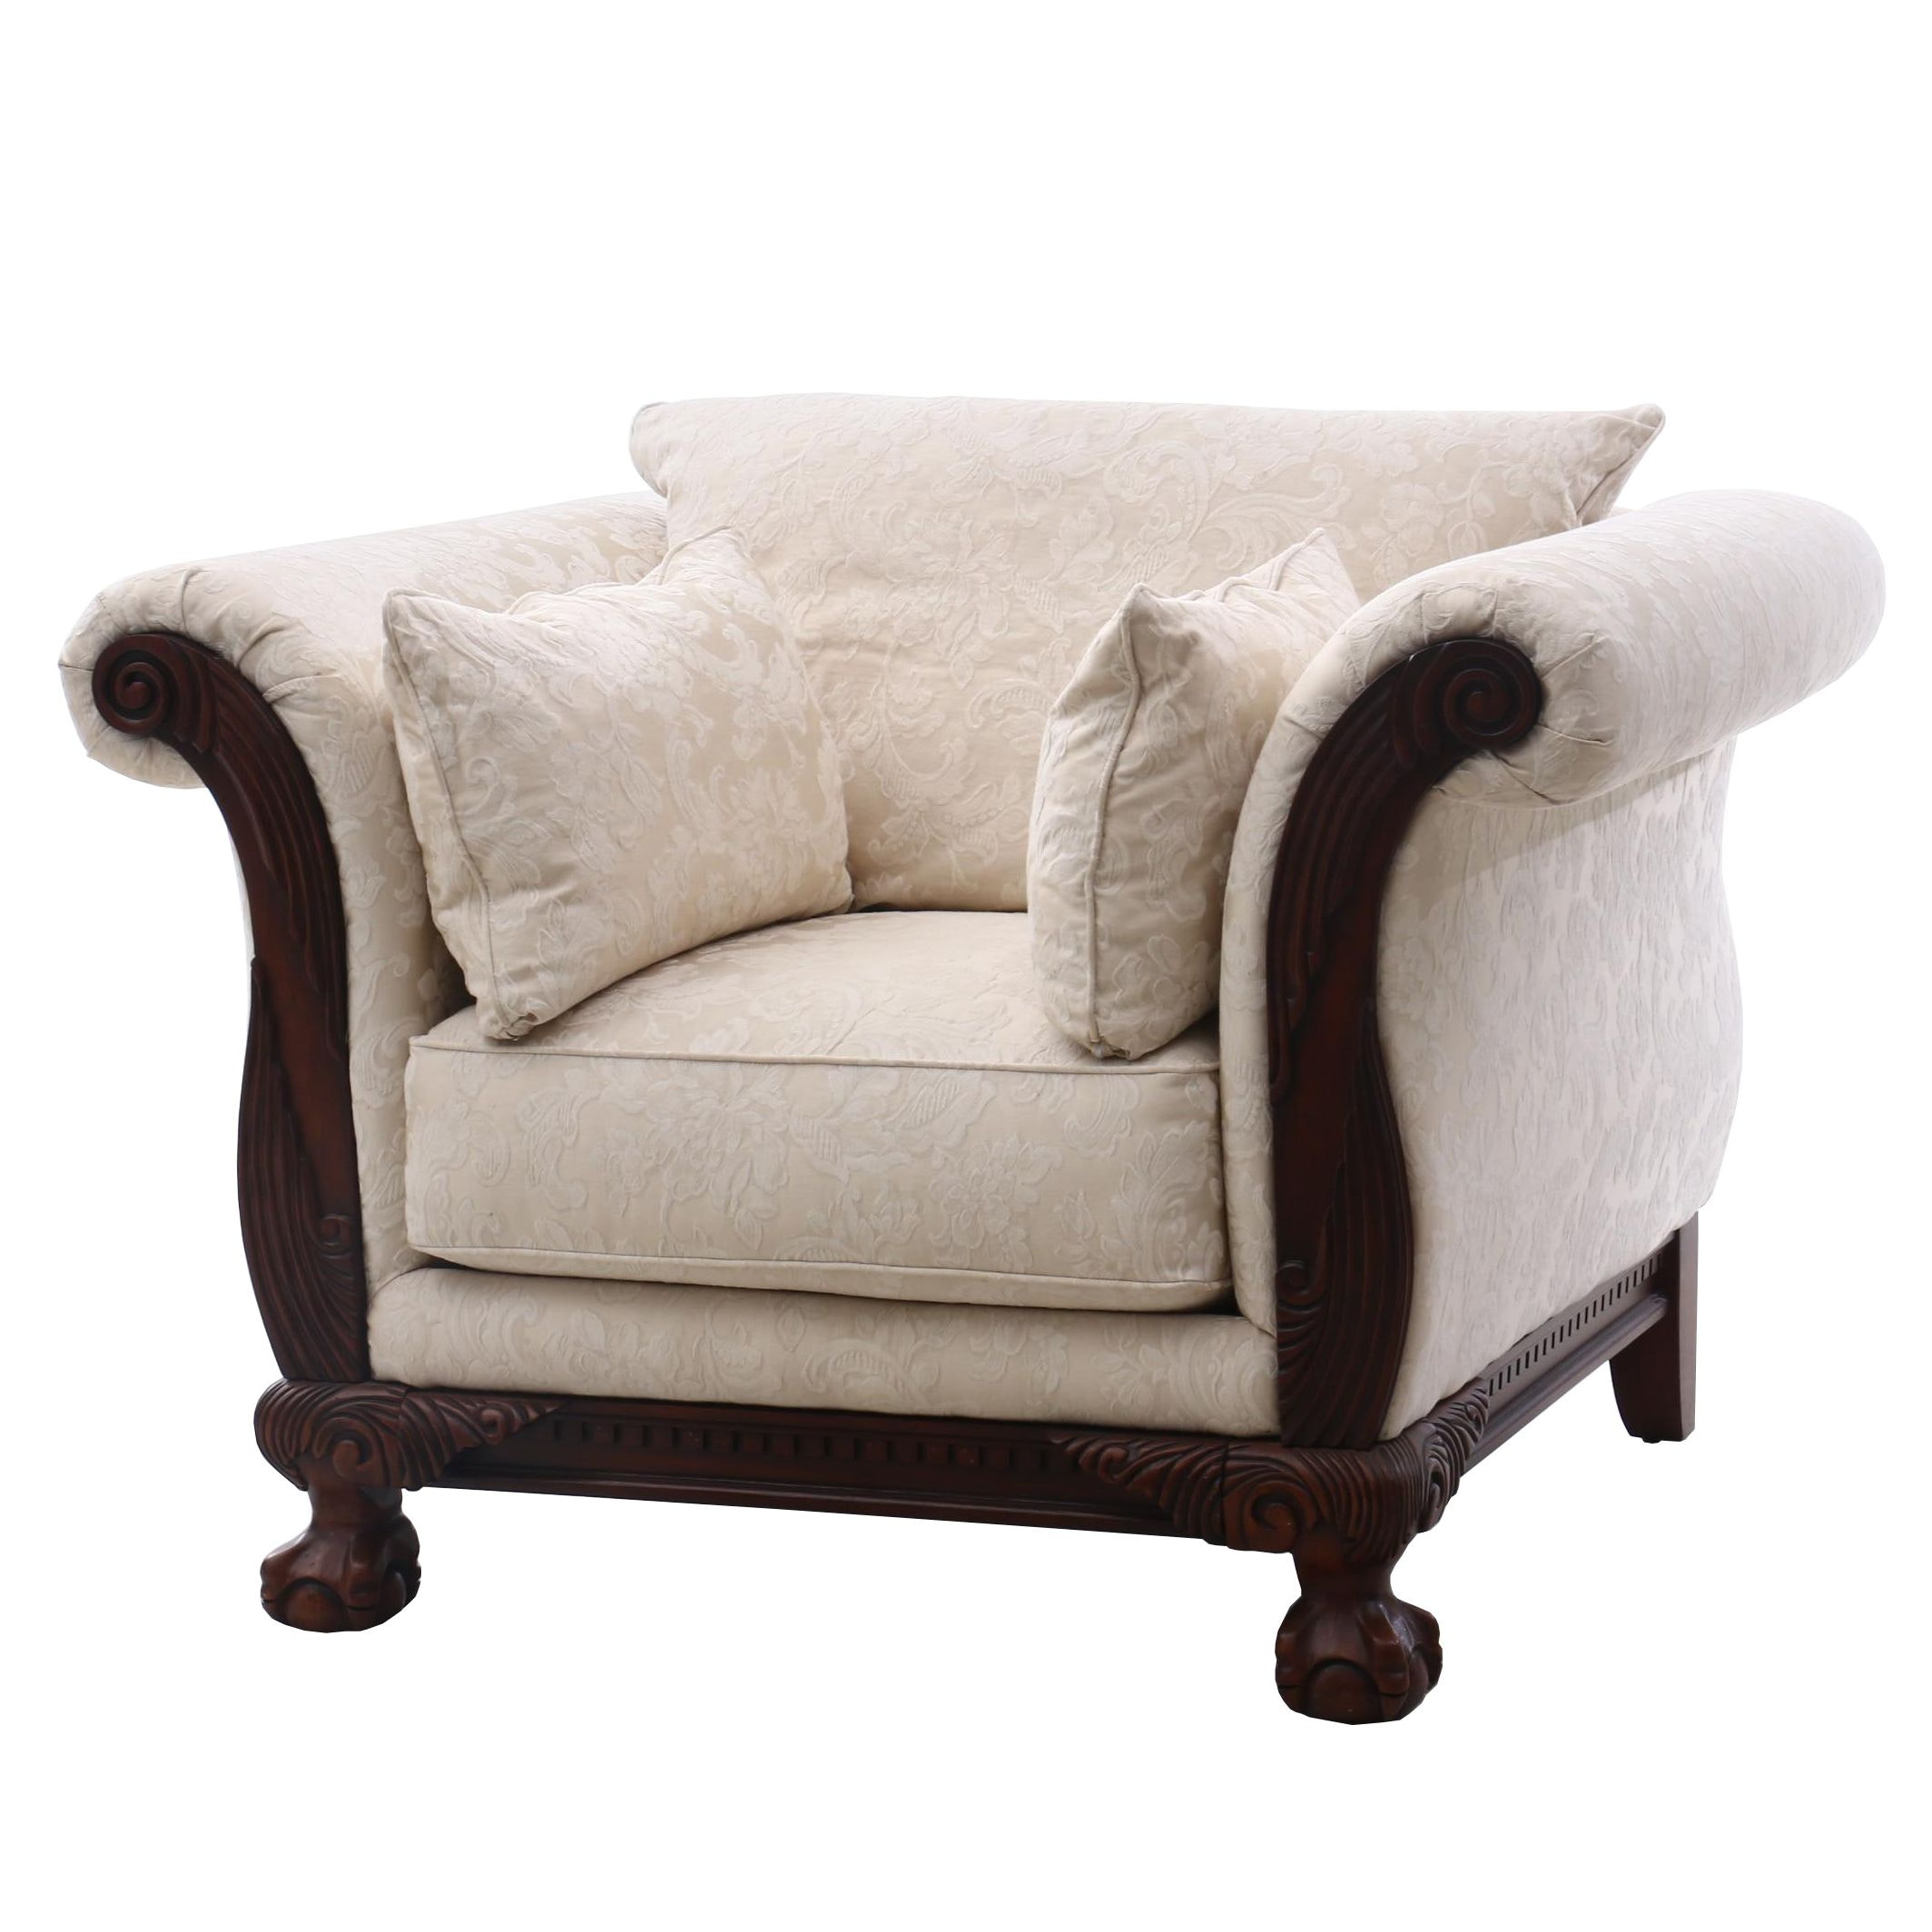 Sofa Express Loveseat in Ivory Damask, Contemporary